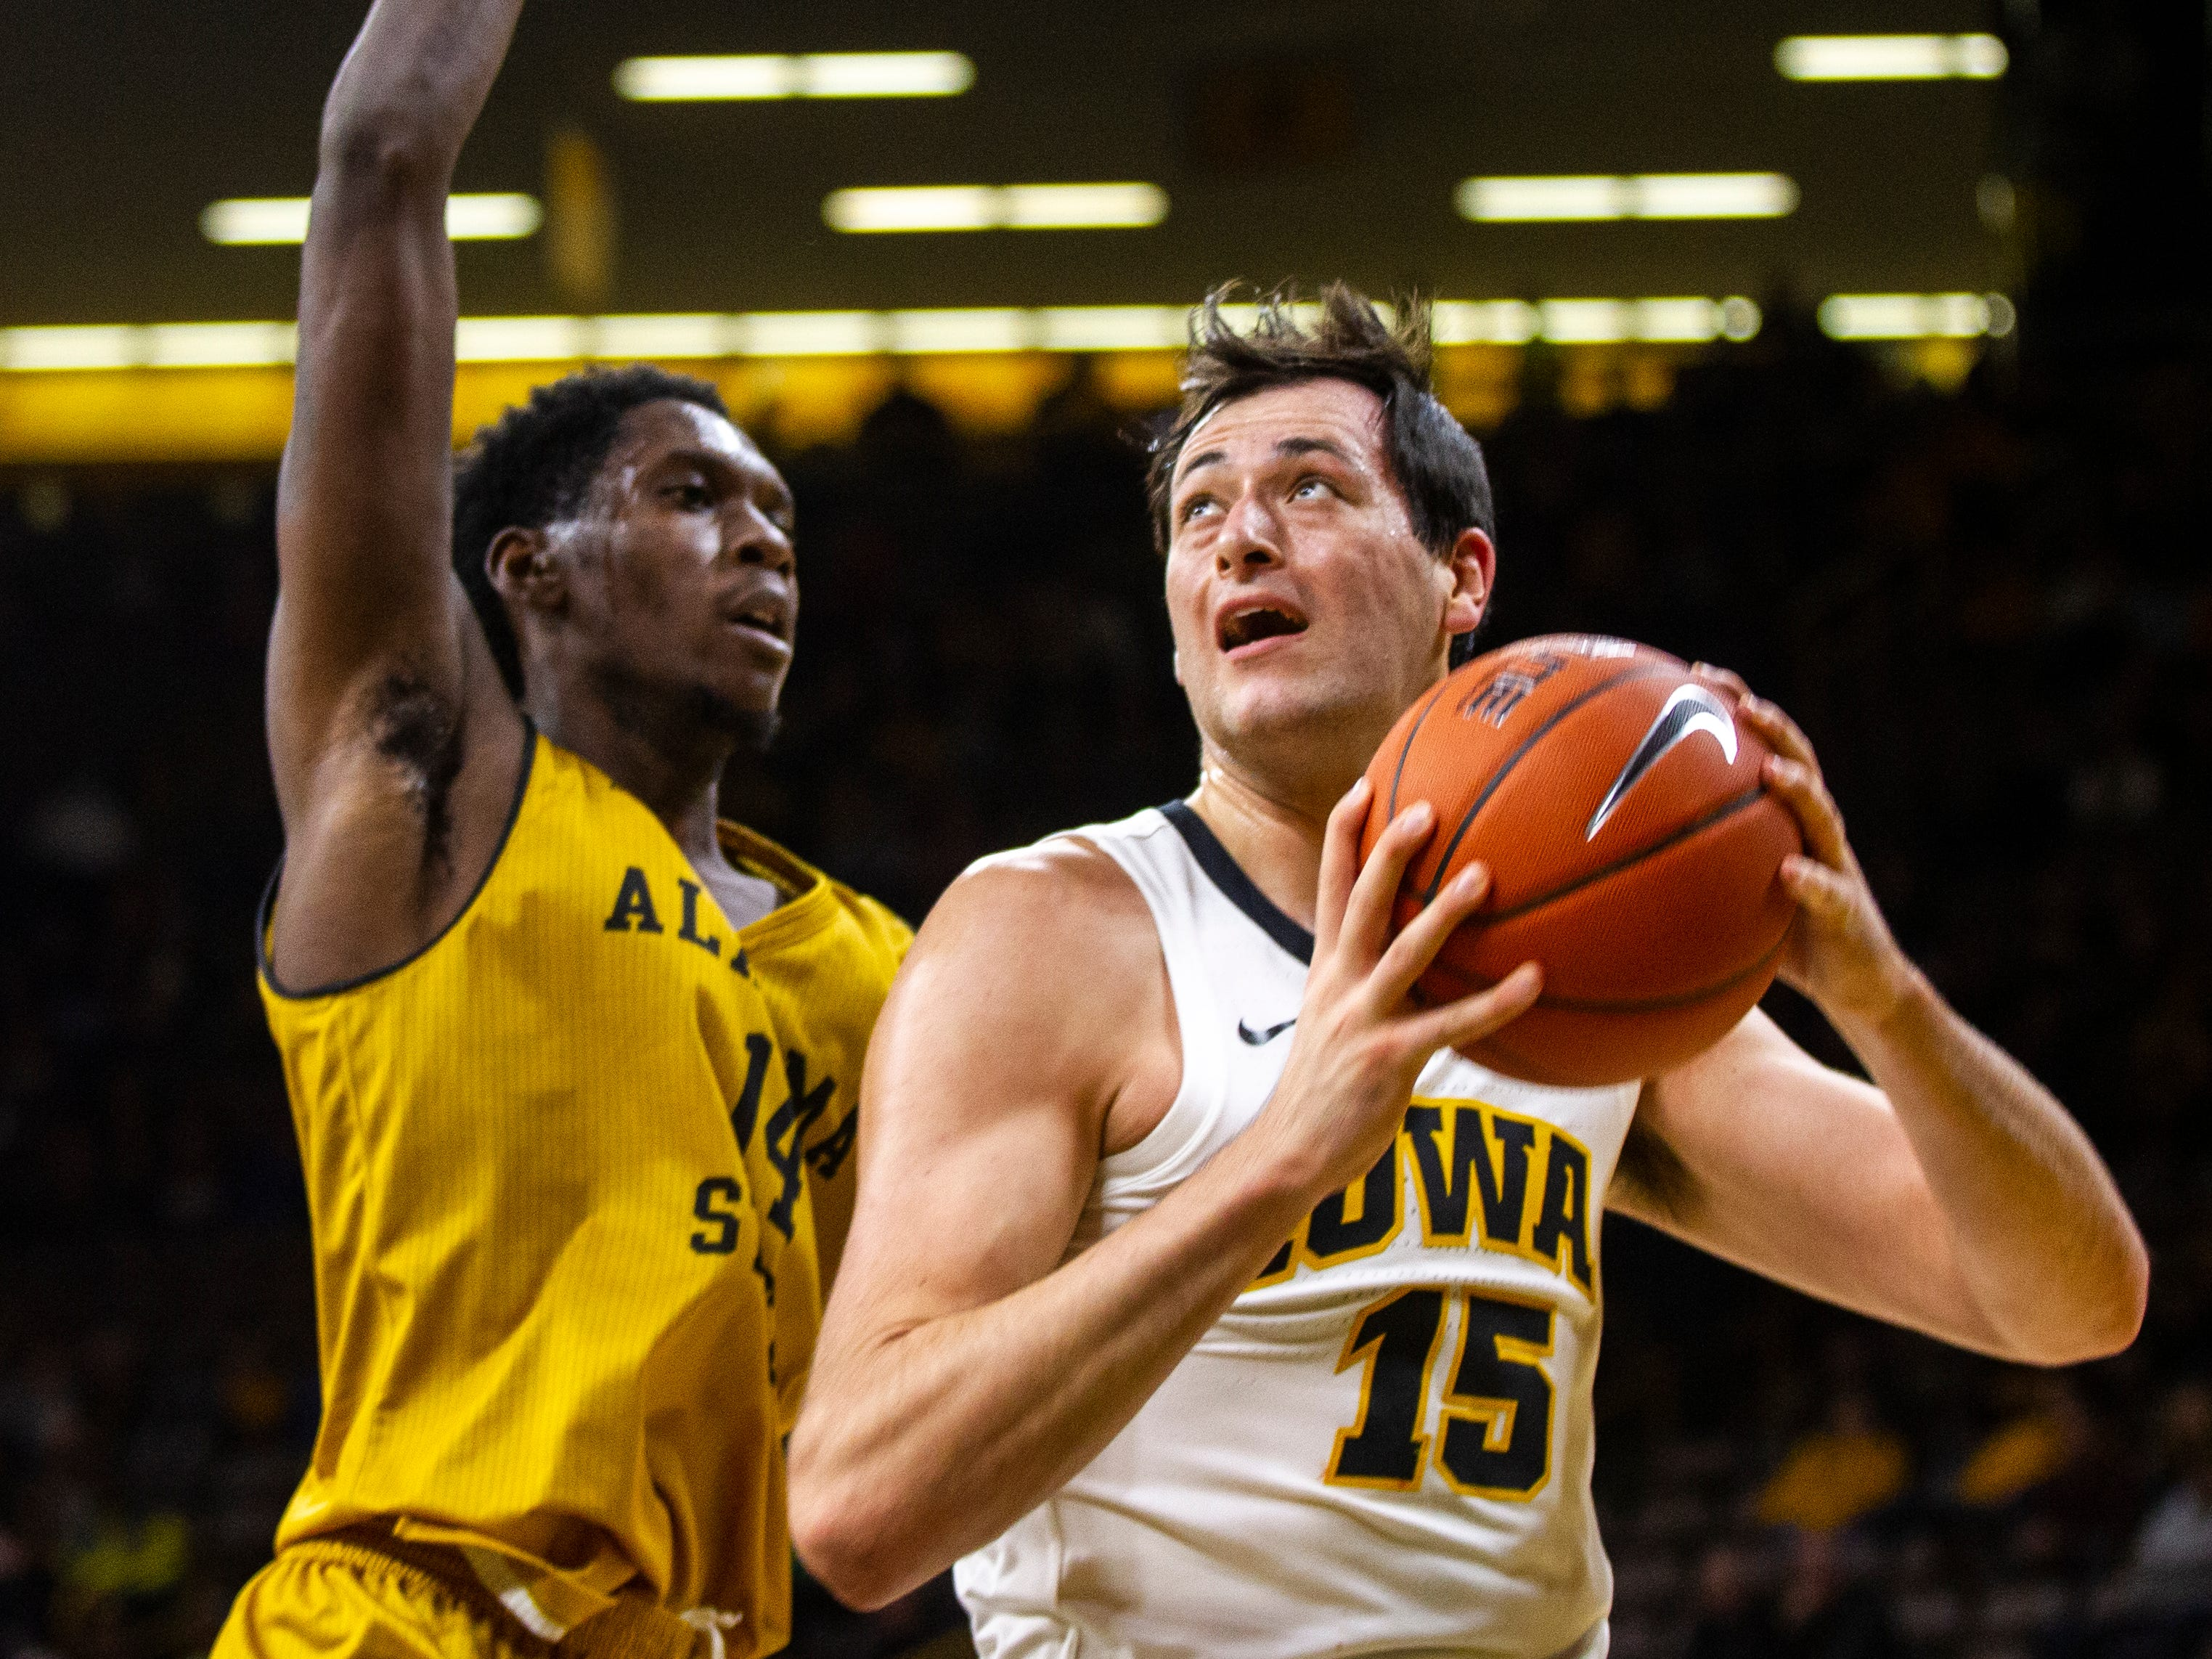 Iowa forward Ryan Kriener (15) attempts a shot while being defended by Alabama State's Ed Jones (14) during an NCAA men's basketball game on Wednesday, Nov. 21, 2018, at Carver-Hawkeye Arena in Iowa City.